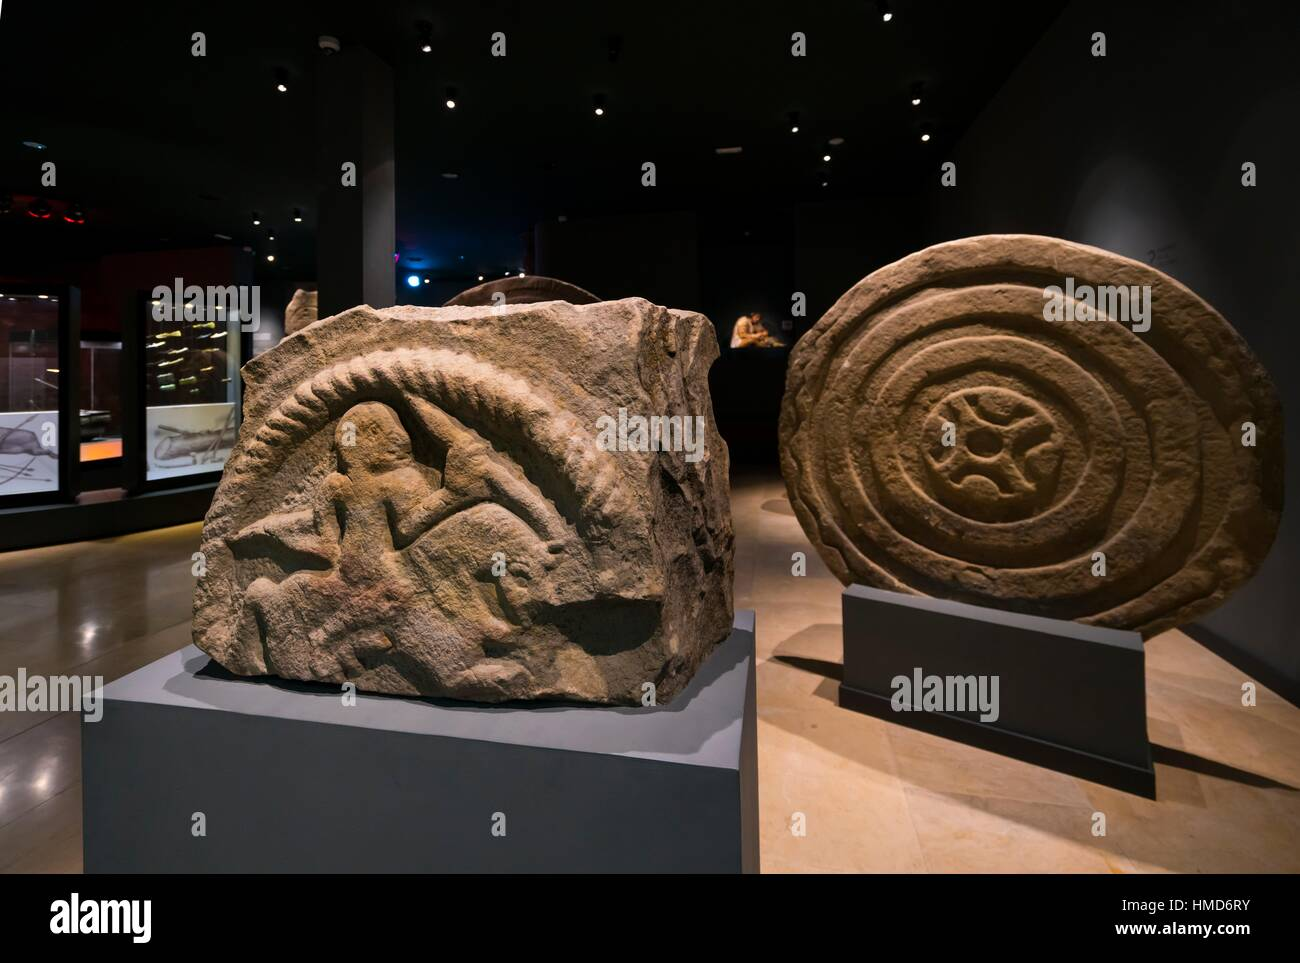 Cantabrian Museum of Prehistory and Archaeology, MUPAC, Santander, Cantabria, Spain, Europe. - Stock Image